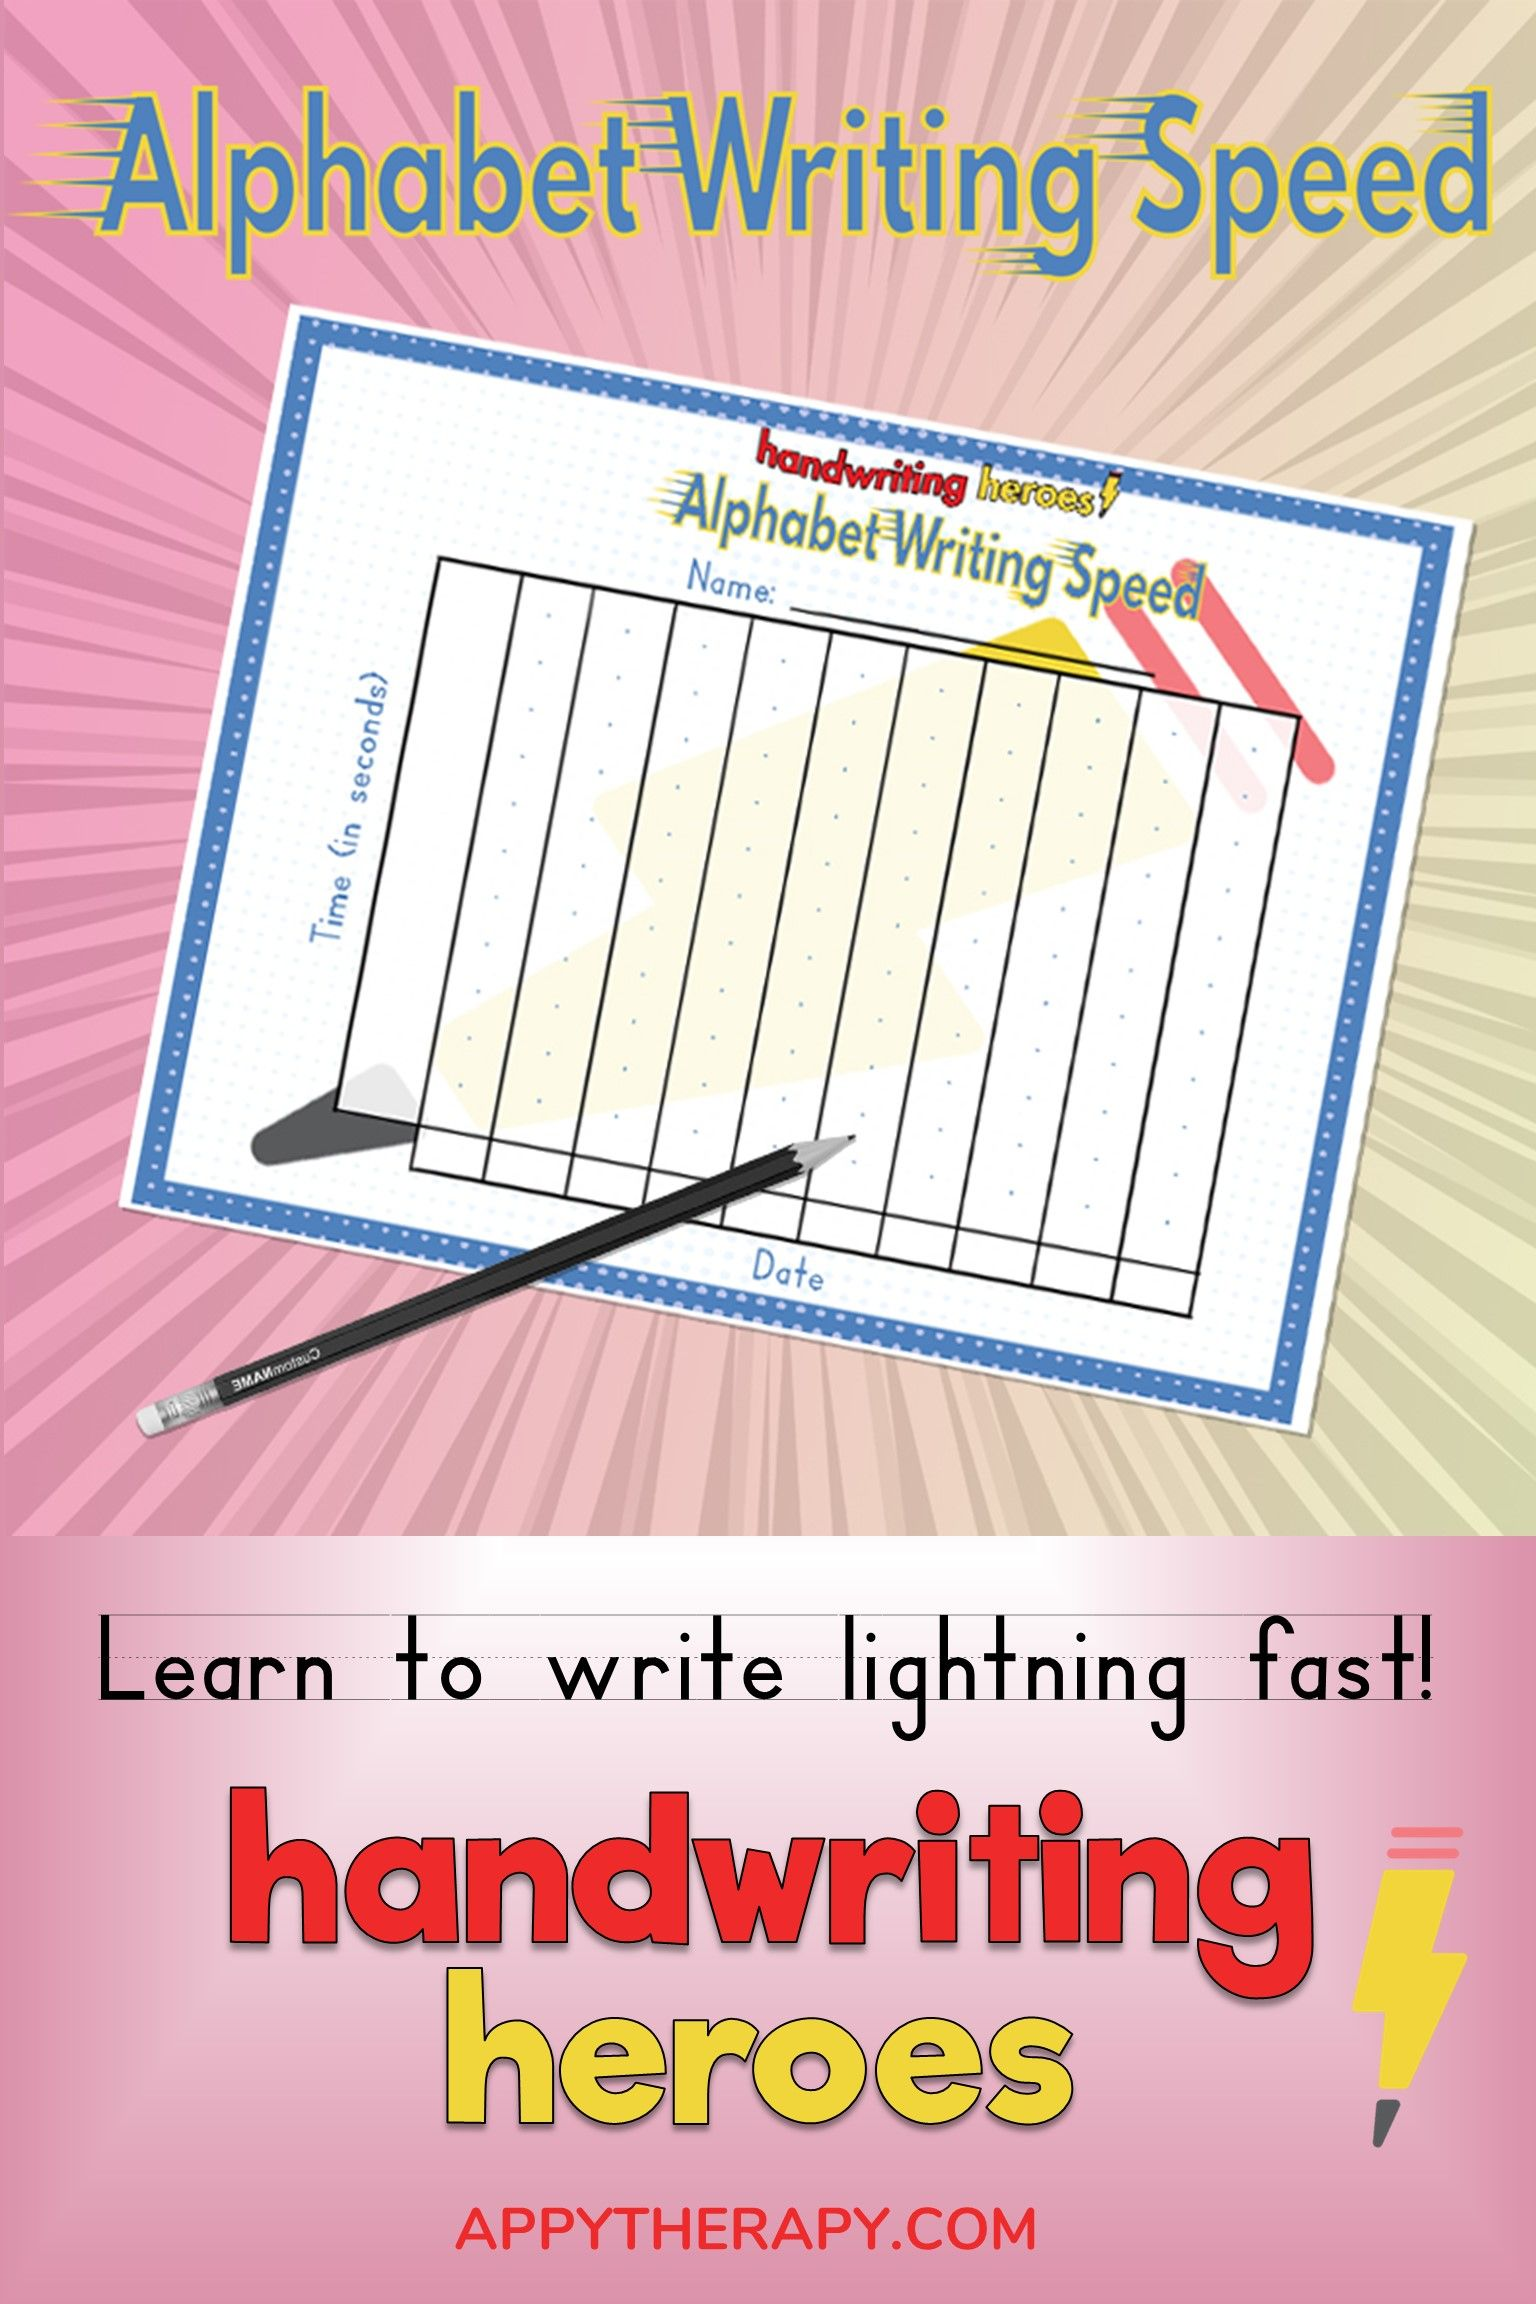 Handwriting Heroes Is A Lightning Fast Method For Teaching Children To Handwrite With Activities In Alphabet Writing Handwriting Instruction Learn Handwriting Fun handwriting activities for grade